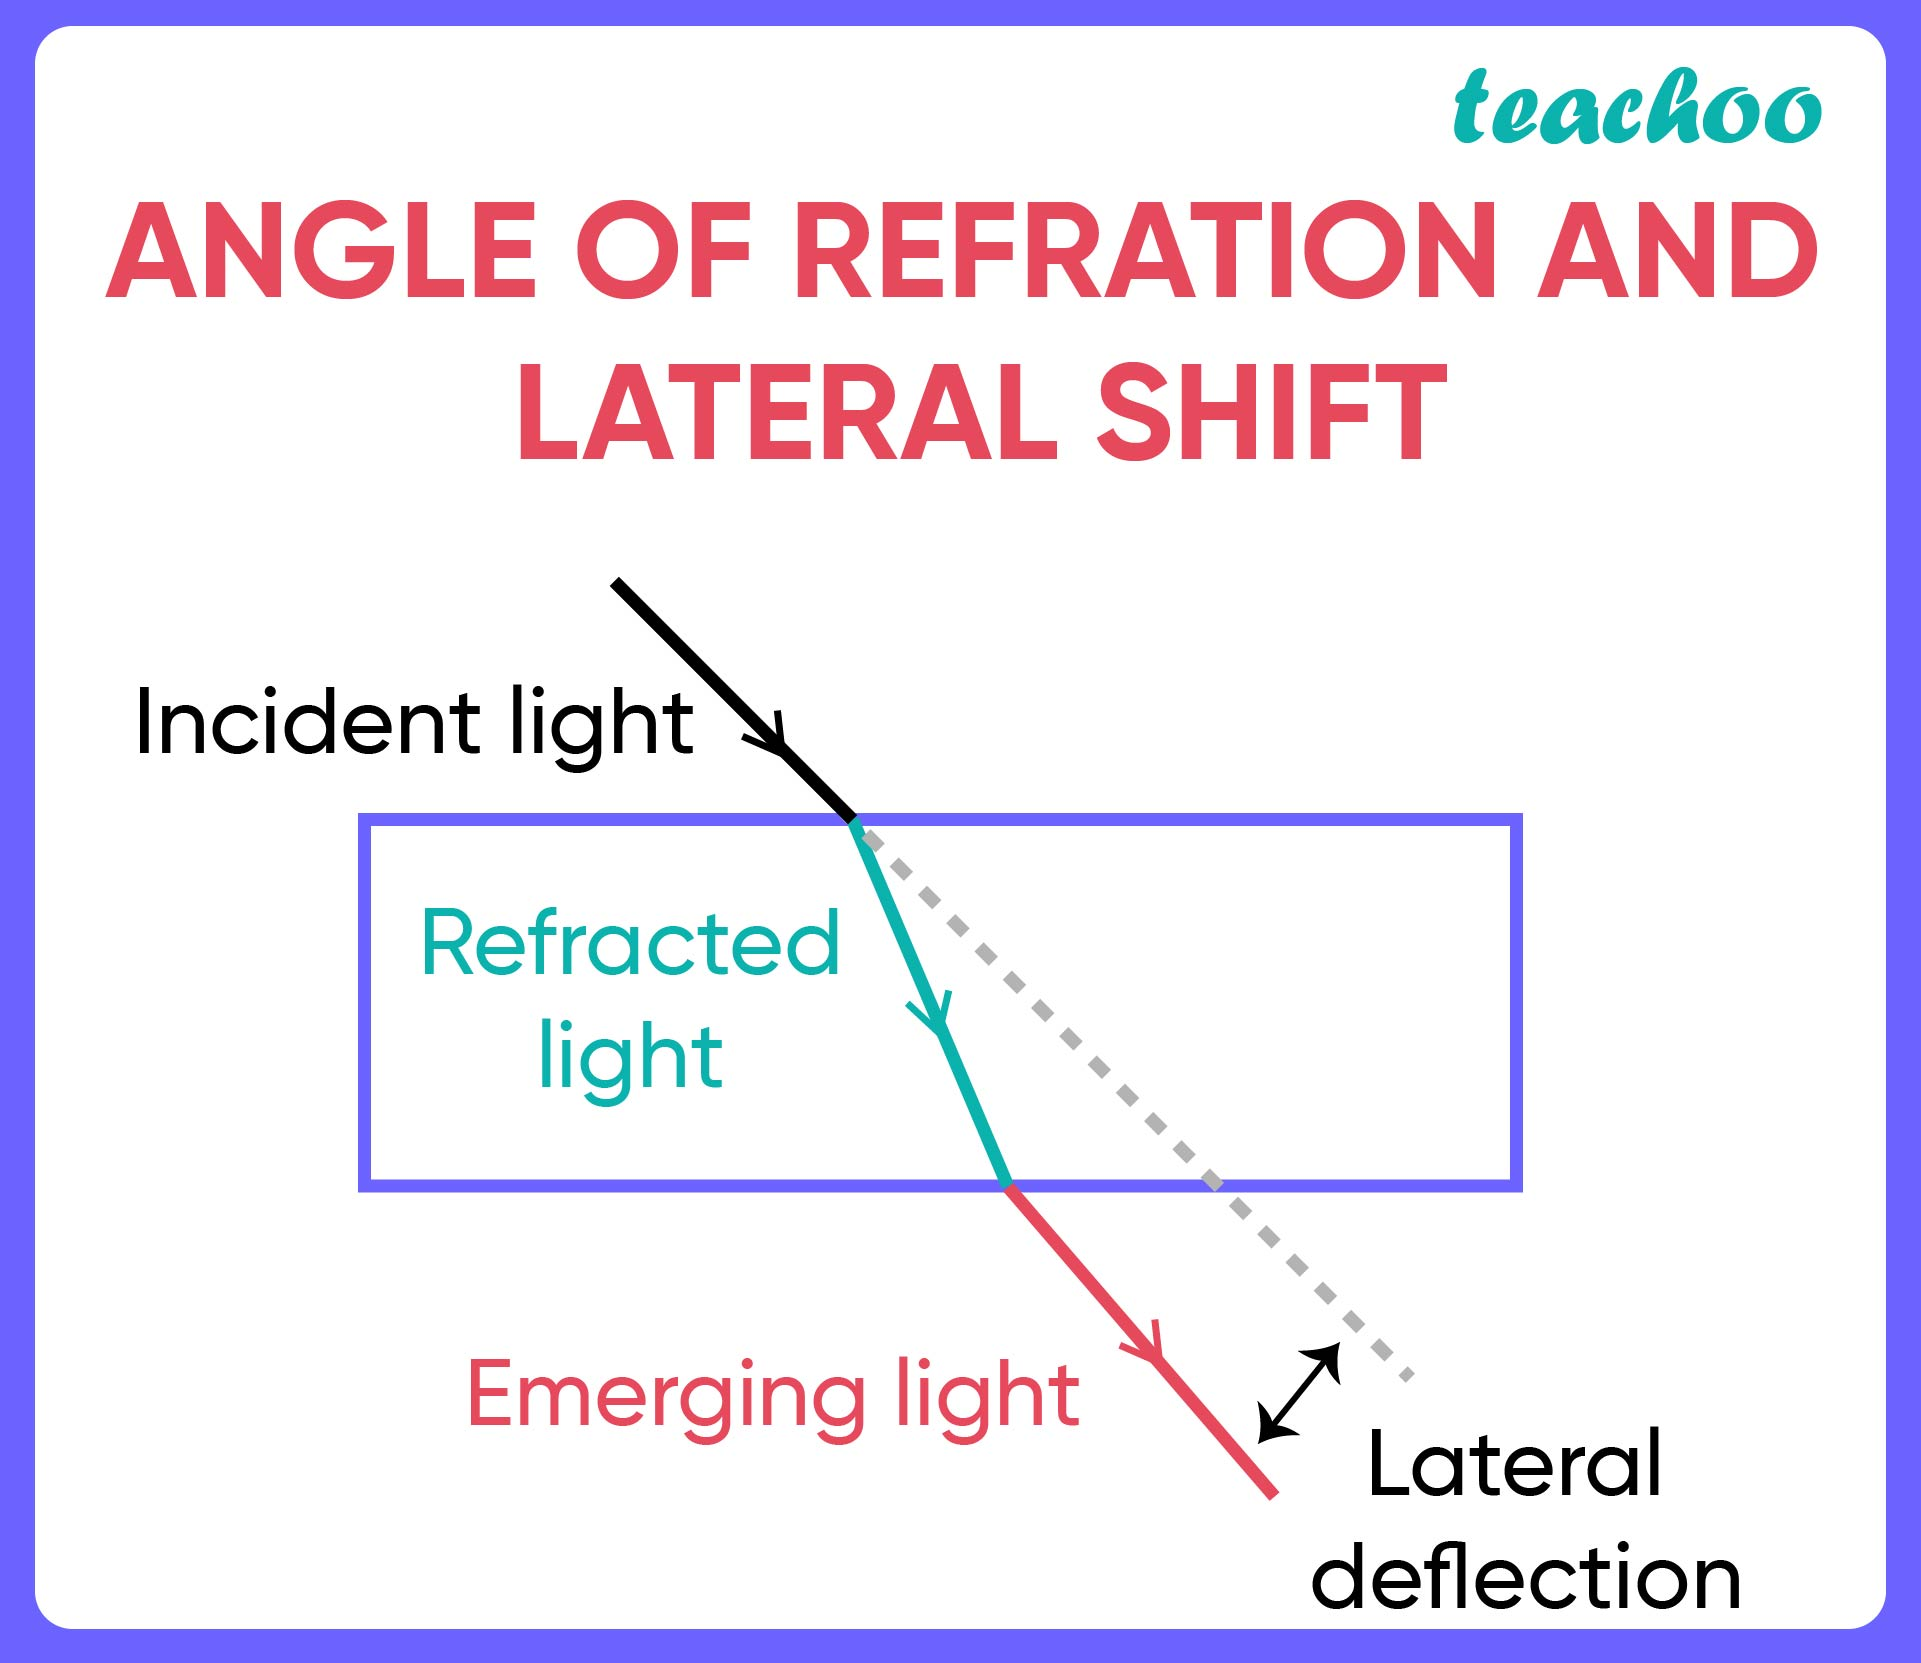 Angle of Refraction and Lateral shift-01.jpg